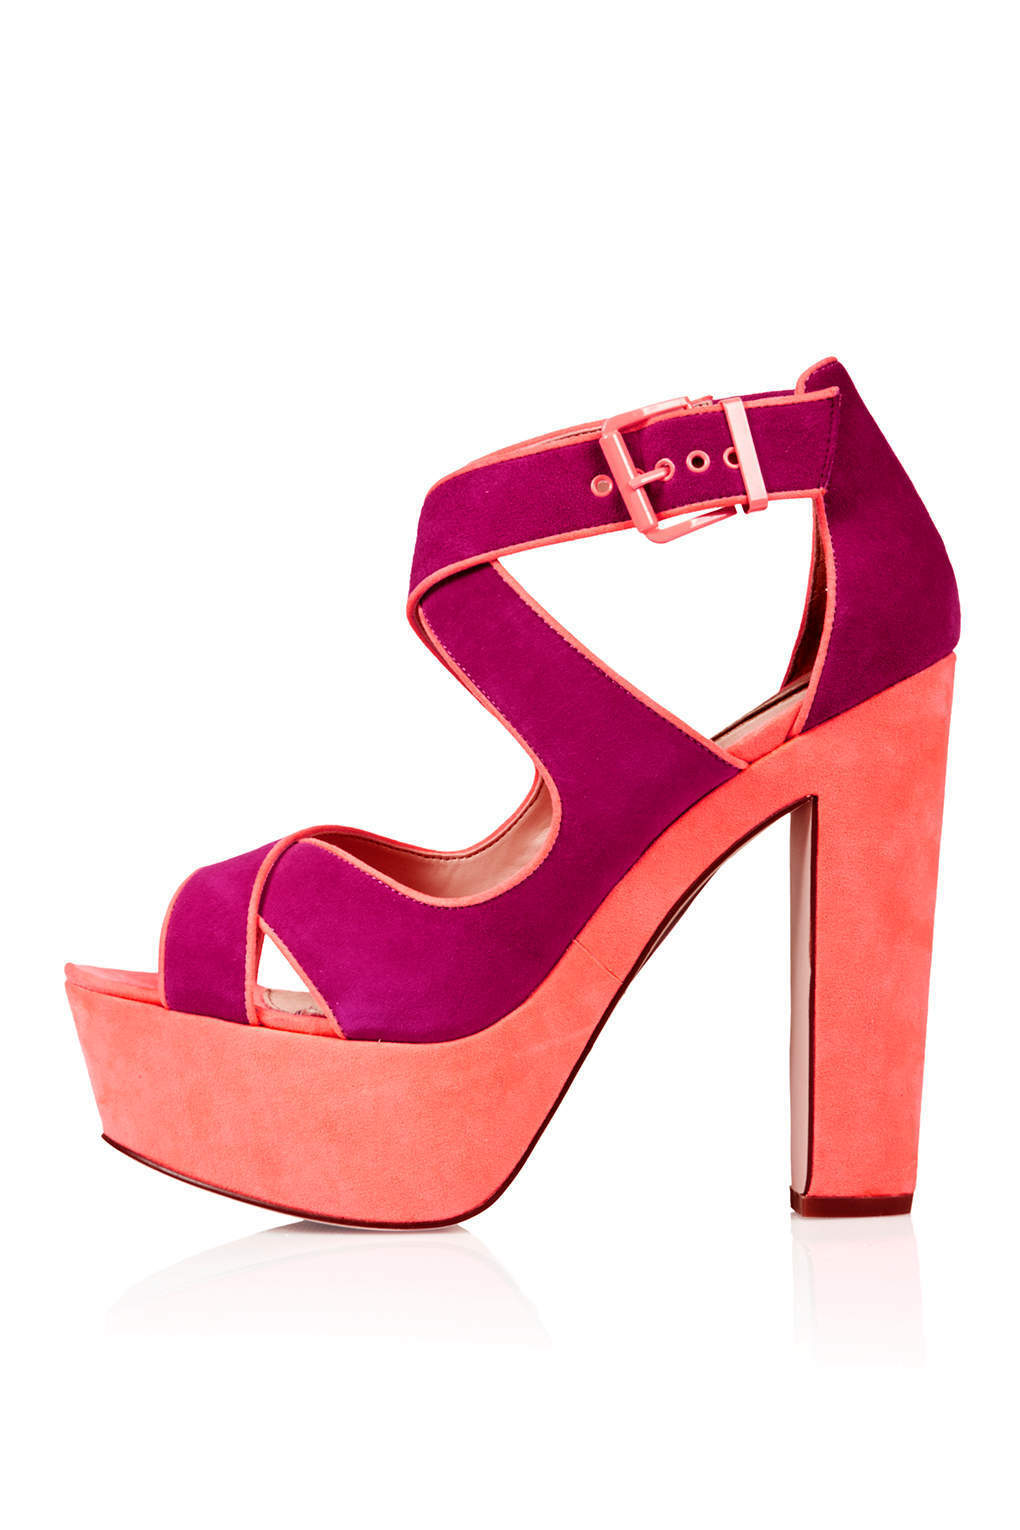 NEU TOPSHOP SURE cross over platform schuhe UK 6 in Coral